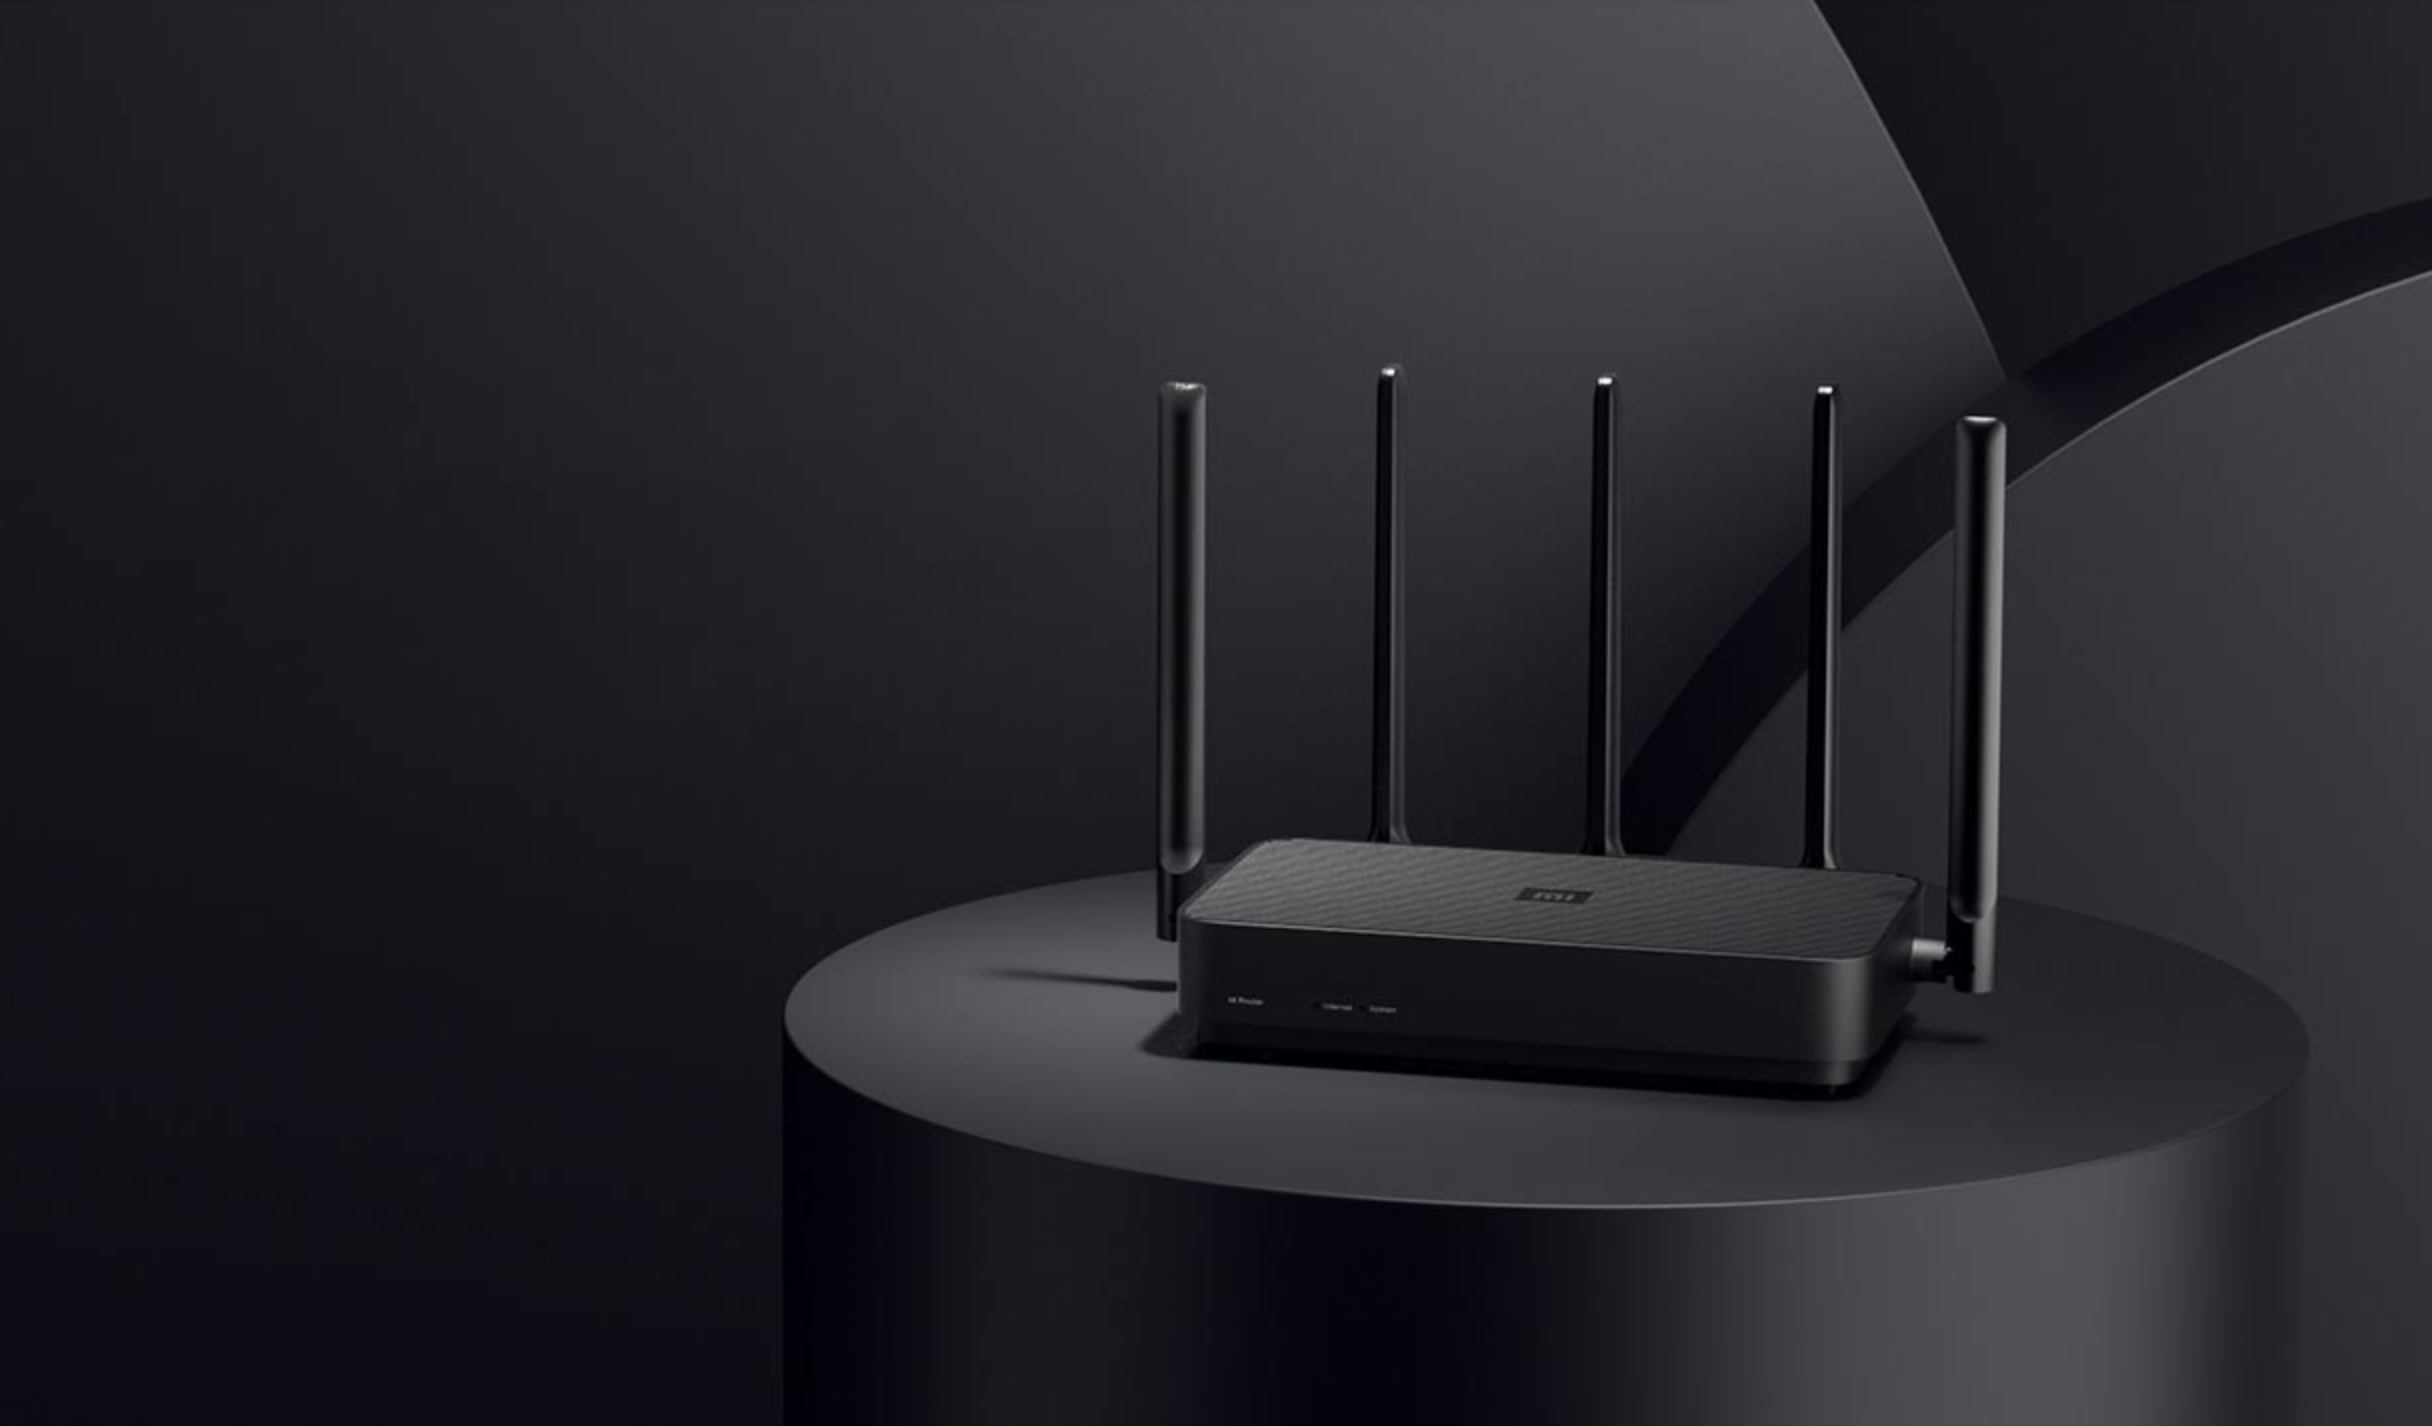 Xiaomi Mi Router 4 Pro: пять антенн, процессор Qualcomm и ценник в 28 долларов